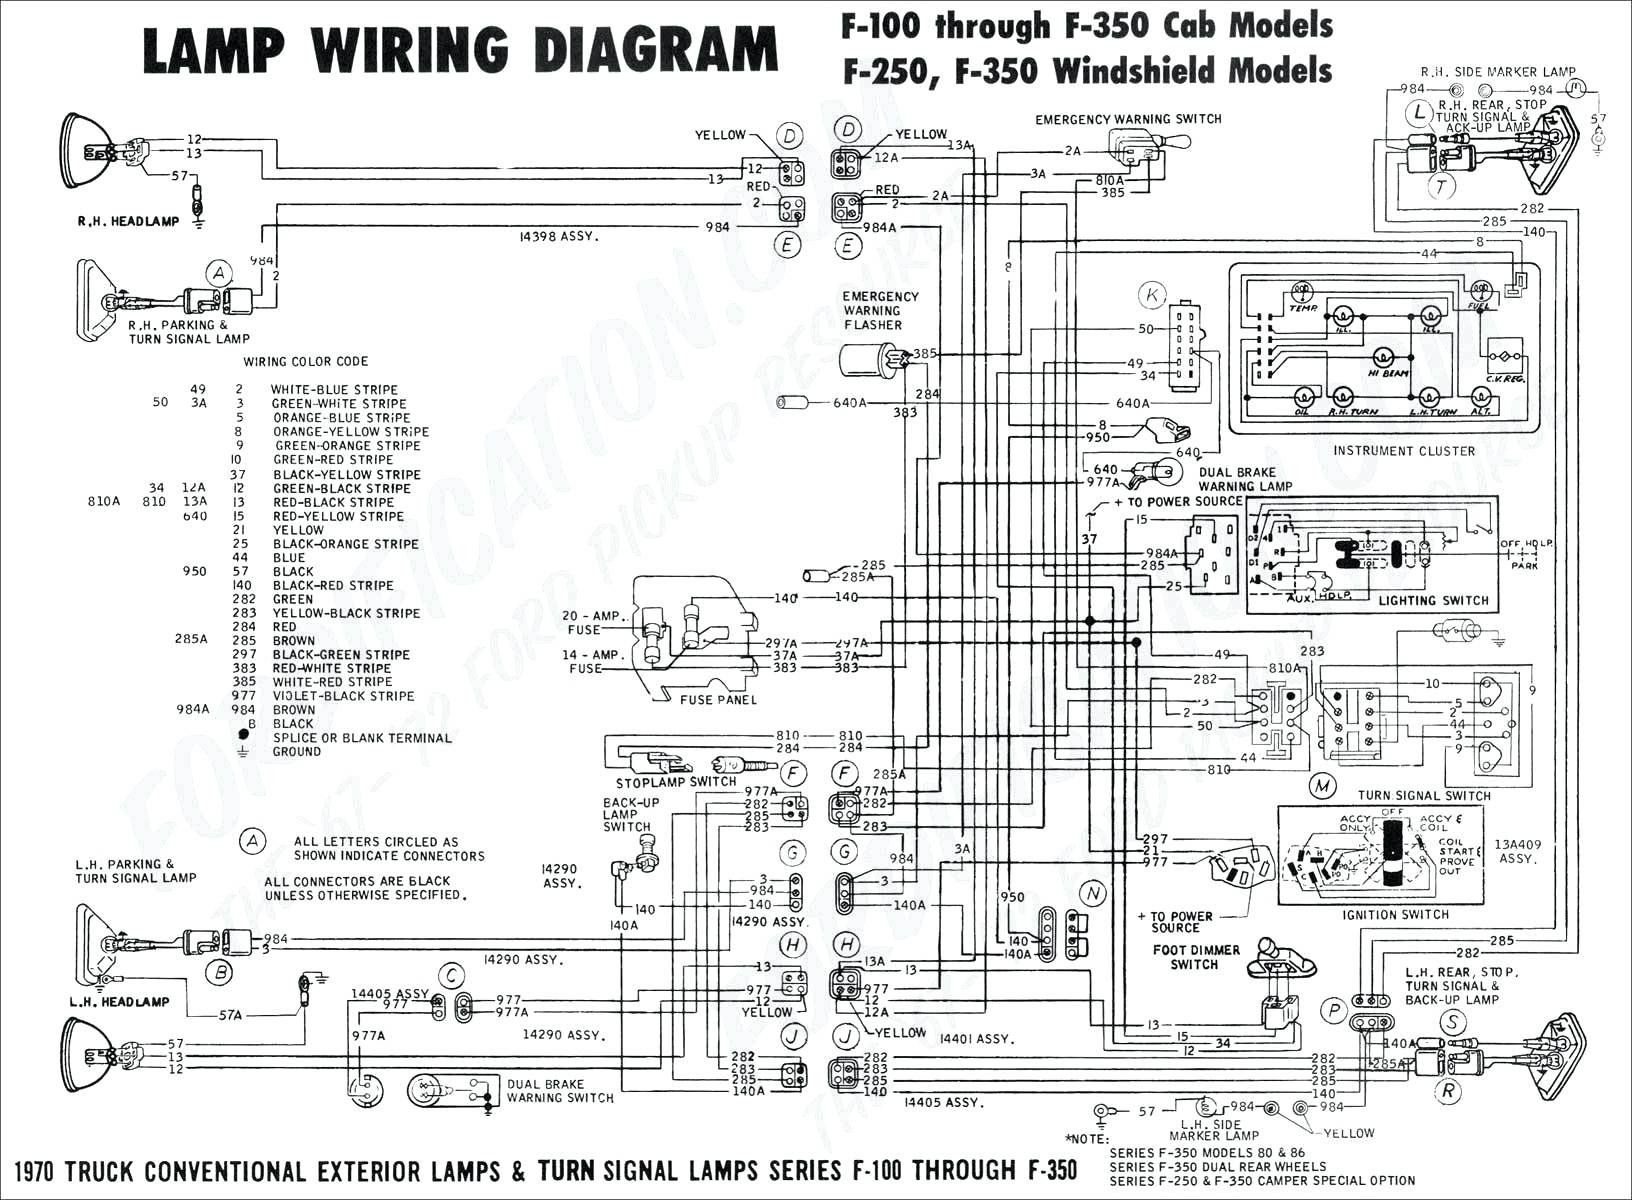 2004 Ford F 350 Wiring Schematic Wiring Diagram Schema Faint Track A Faint Track A Atmosphereconcept It